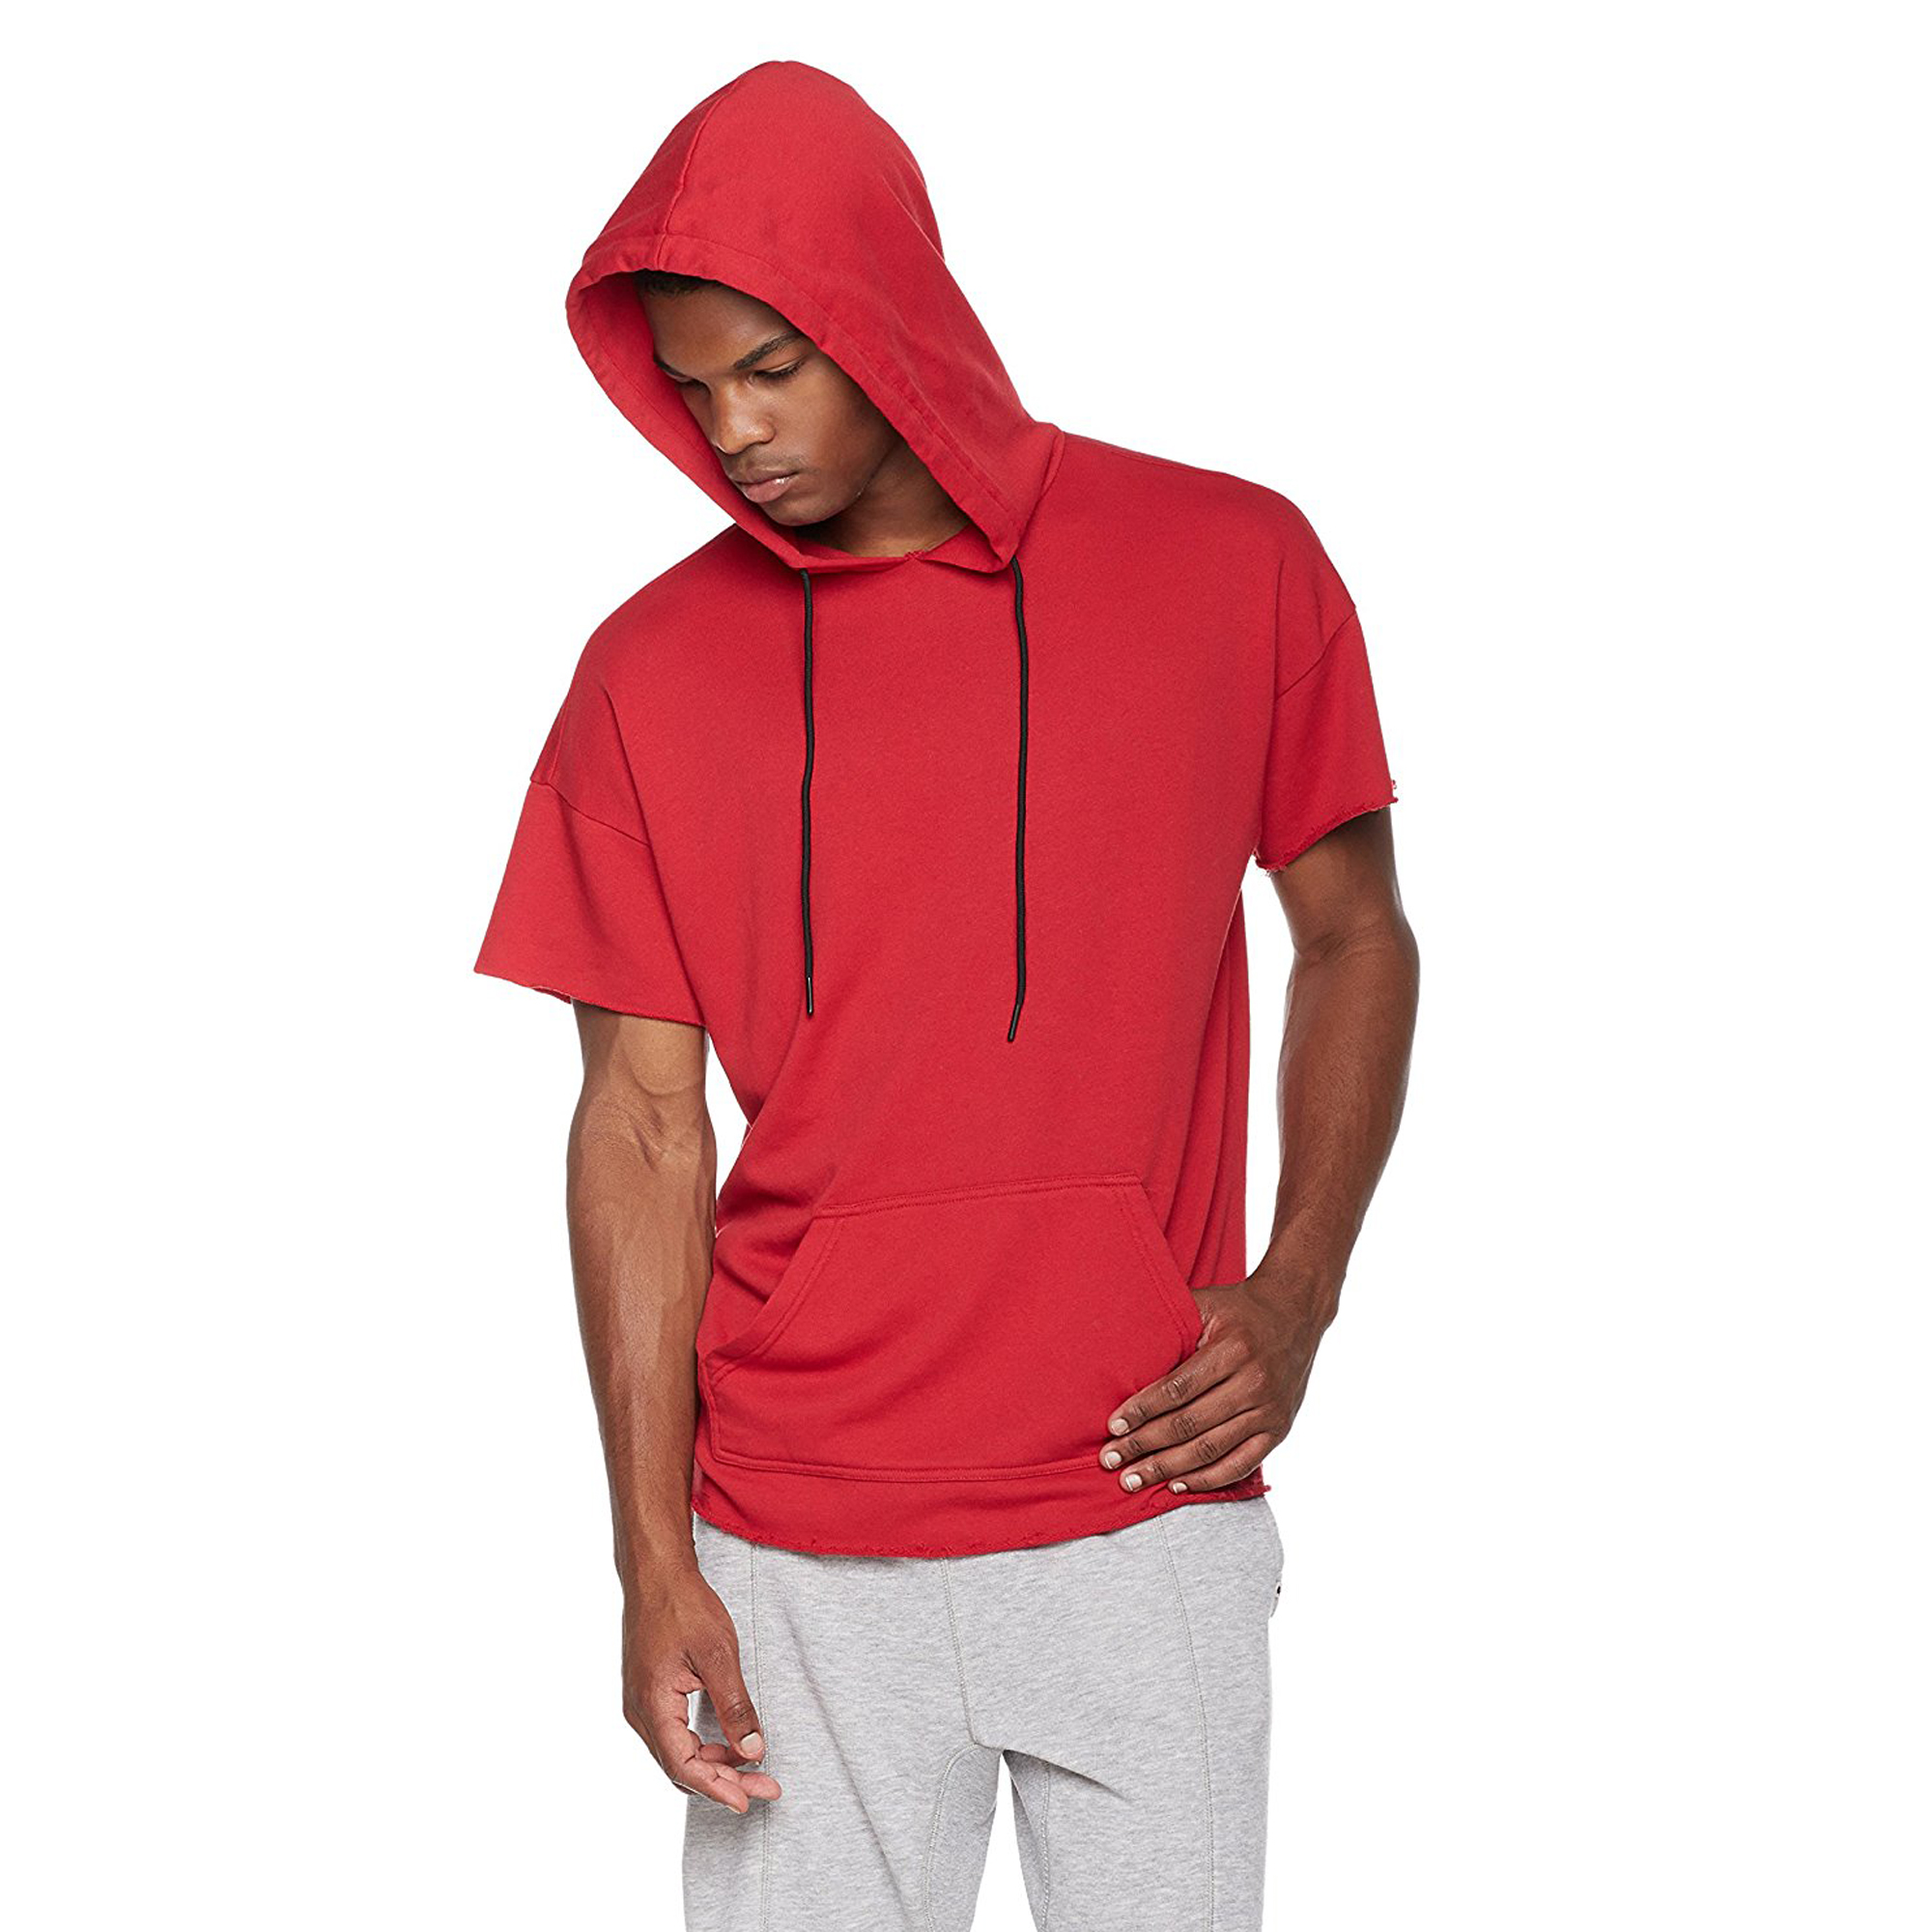 PAUSE Red Solid Cotton Round Neck Slim Fit Short Sleeve Men's T-Shirt